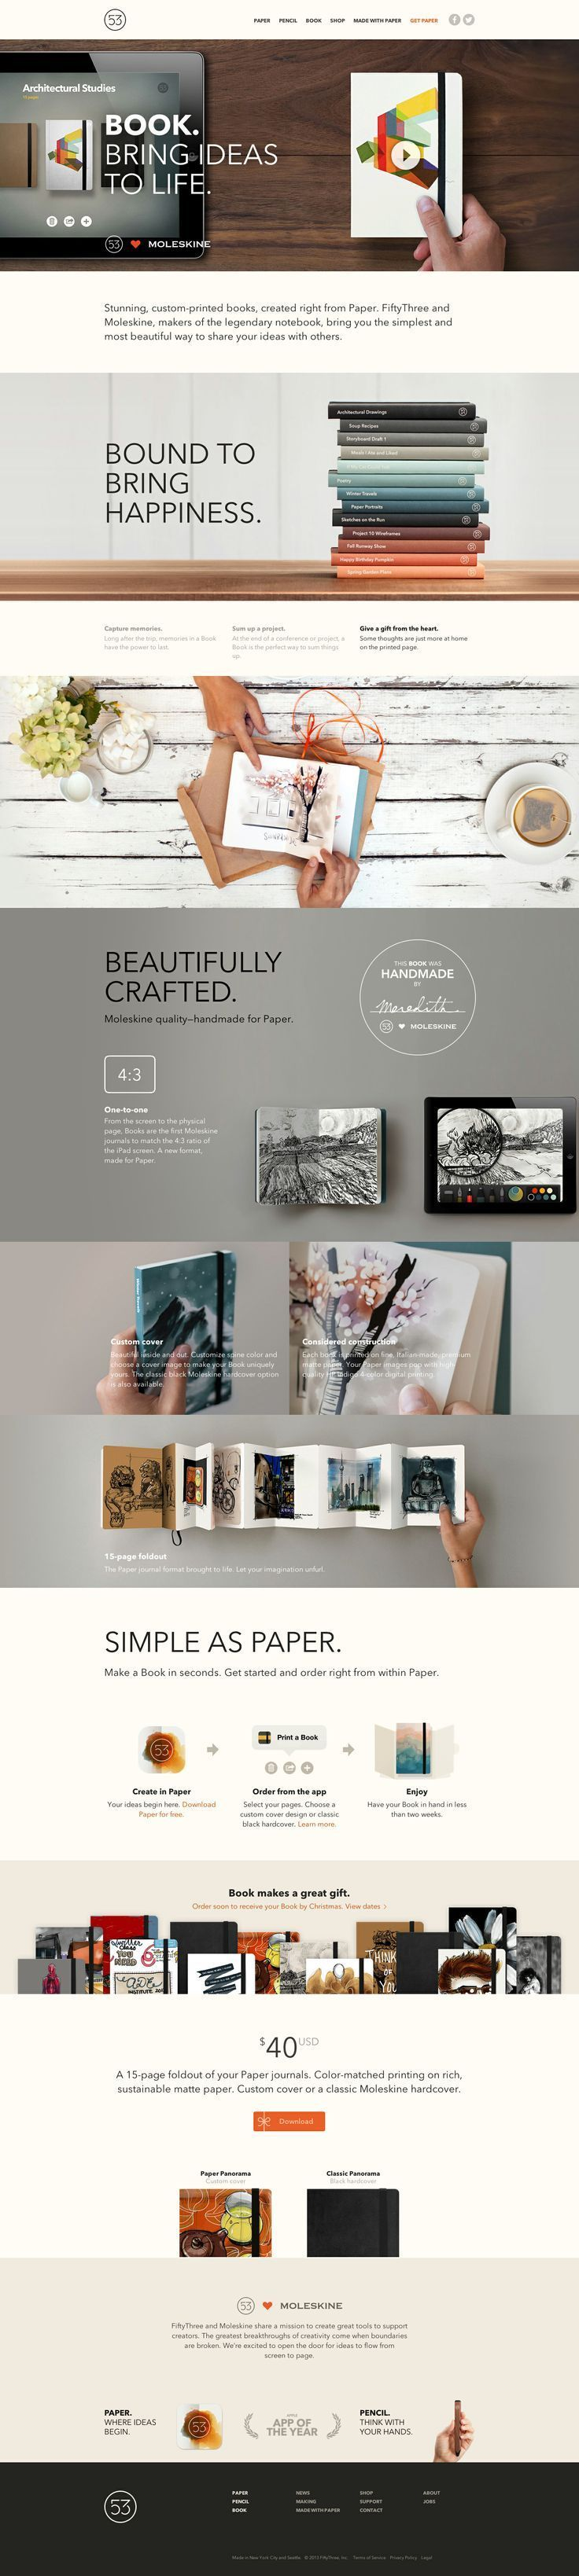 Incredible web design layout and color palette